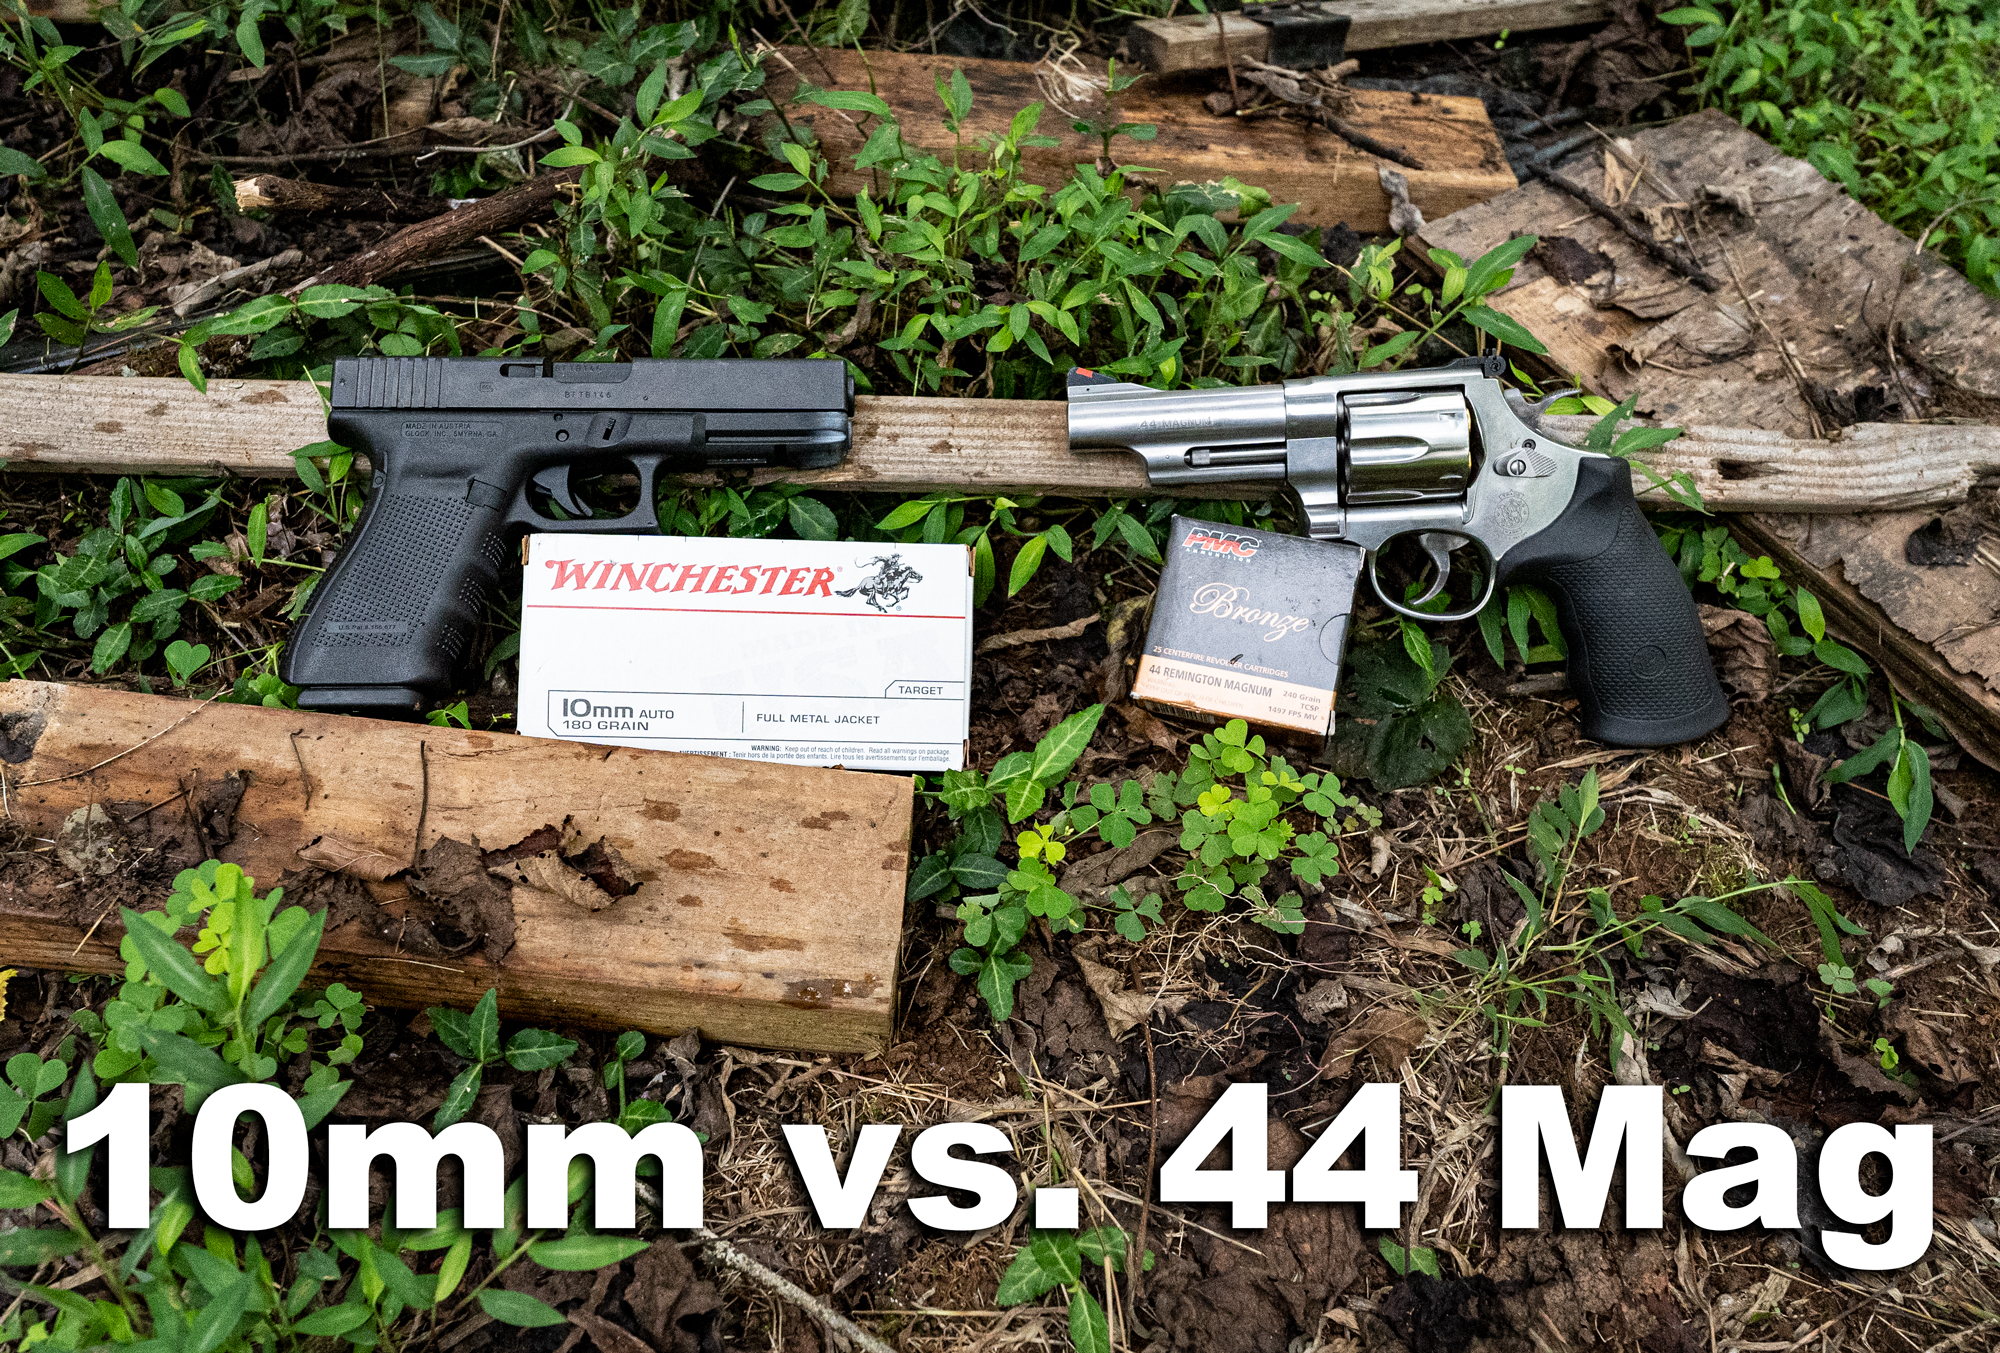 10mm vs 44 magnum pistols with ammo side by side